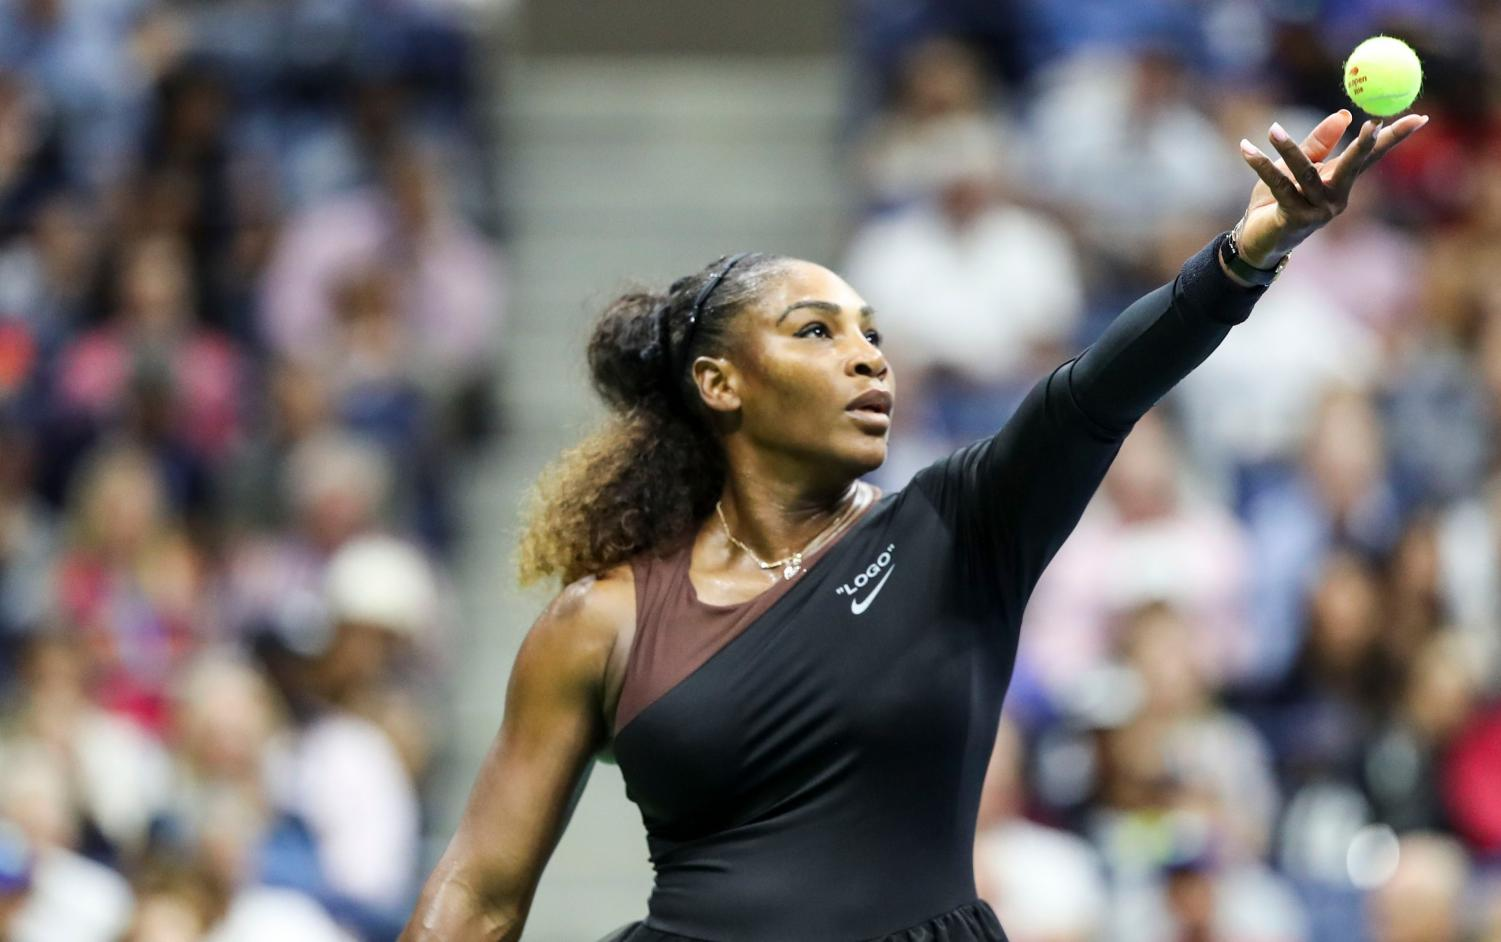 Serena Williams throws a ball before serving at the U.S. Open. Williams and the umpire argued multiple times throughout the match. Photo used with permission from David Shopland.